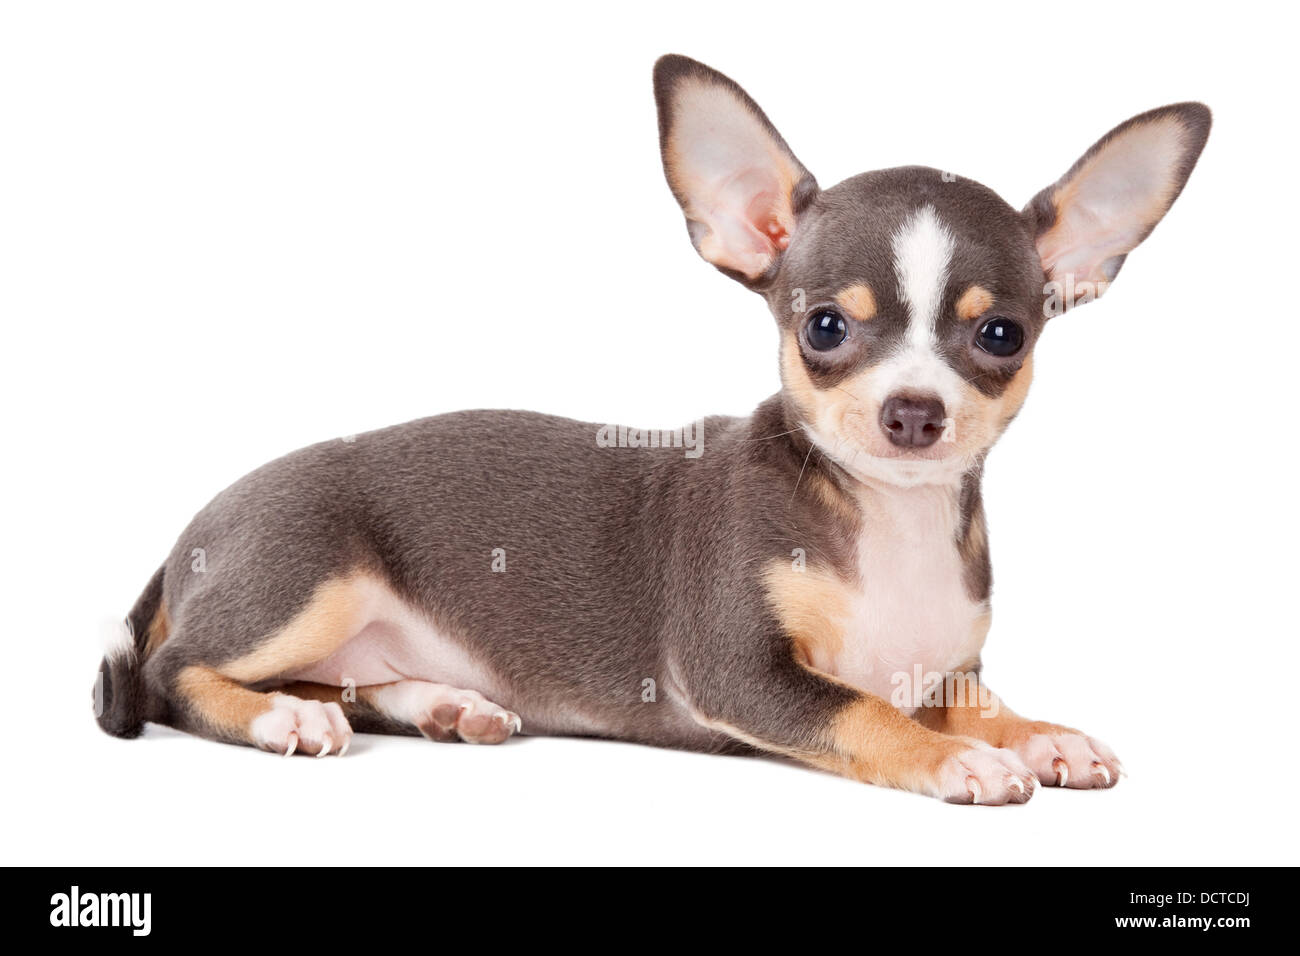 Young Chihuahua looking at the camera in a head shot, against a white background Stock Photo